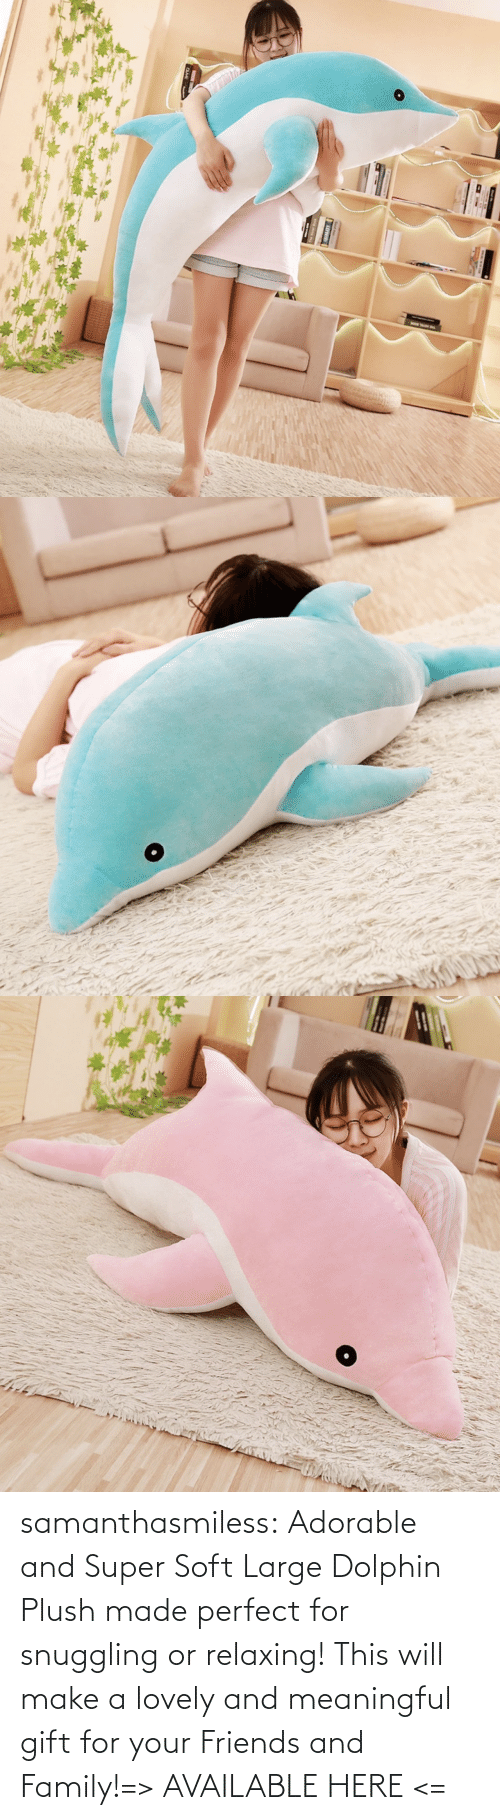 perfect: samanthasmiless:  Adorable and Super Soft Large Dolphin Plush made perfect for snuggling or relaxing! This will make a lovely and meaningful gift for your Friends and Family!=> AVAILABLE HERE <=